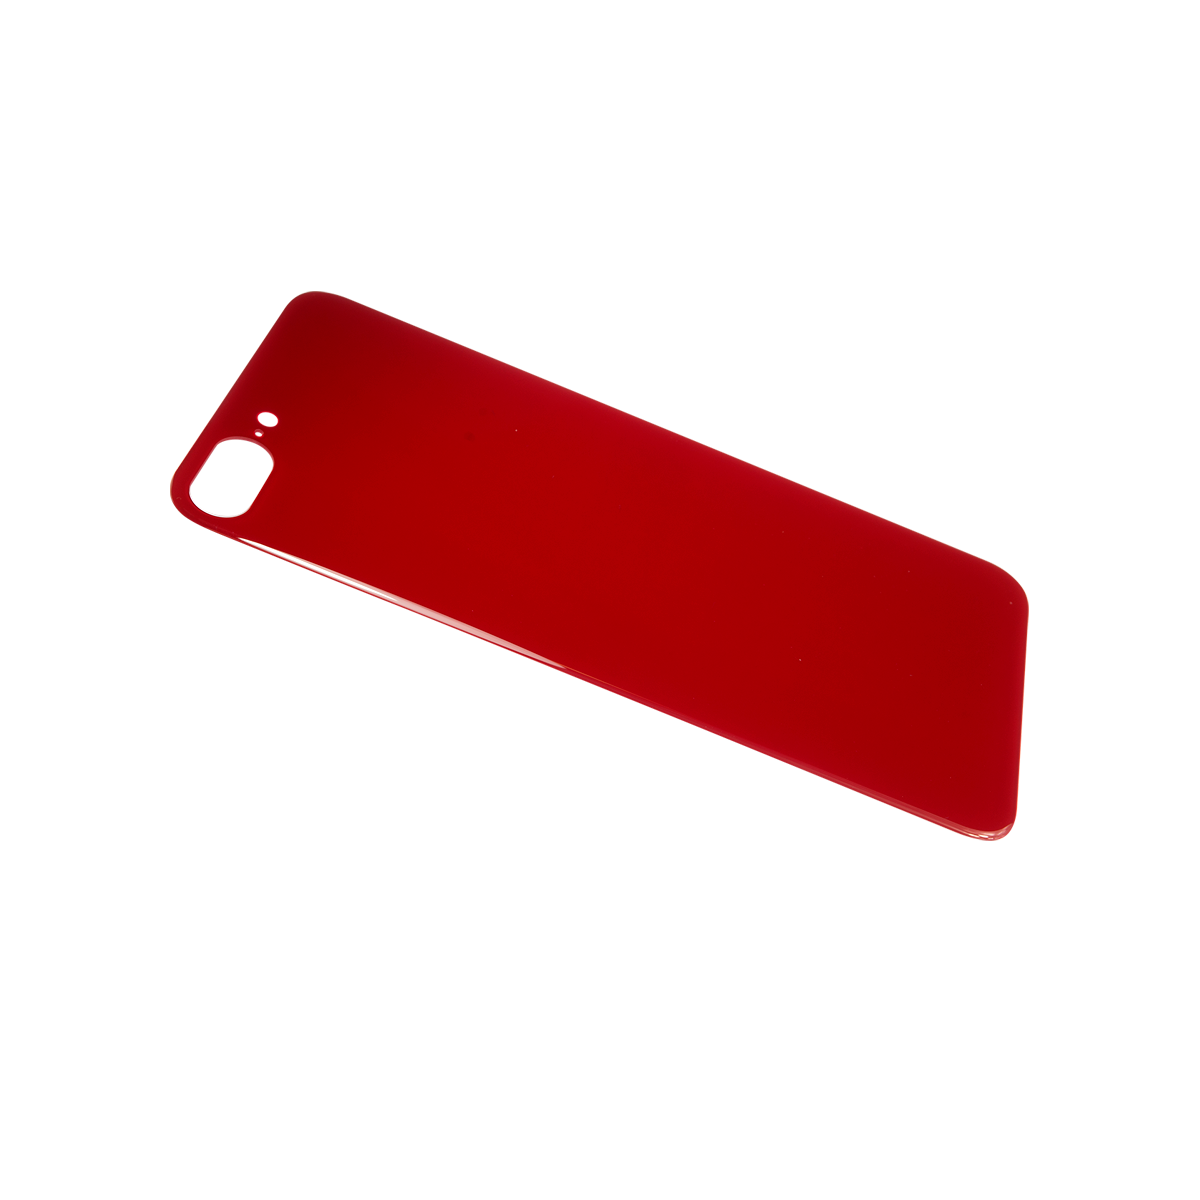 iPhone_8_Plus_Rear_Glass_Replacement_Red_Side_View_SBQNYL7UU673.png